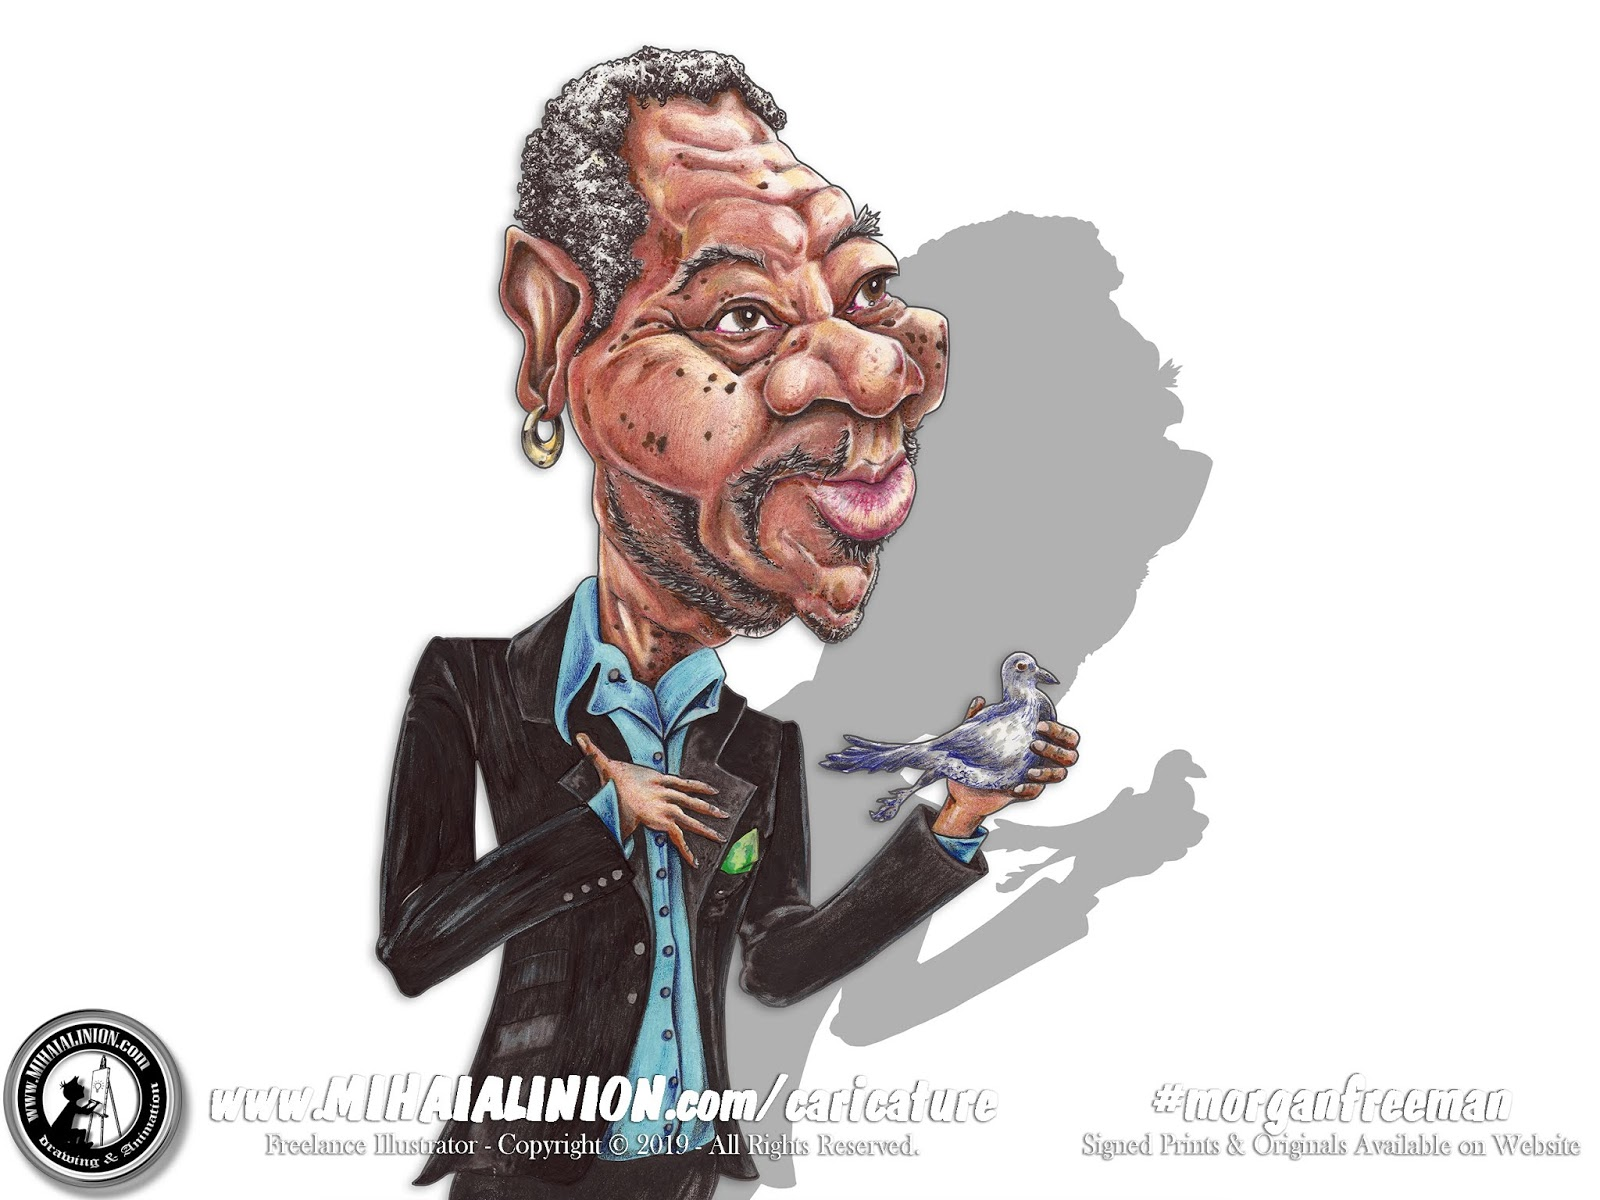 Drawing Morgan Freeman, promarkers, caricature Illustration, drawing caricature, pencil drawing, how to draw caricature, art illustrated, mihai alin ion comics, matei alexandru ion, Drawing with Matei, Matei Draws, creioane colorate, hollywood stars, morgan freeman movie, illustrations by mihai alin ion, painting, MAI Comics, Mihai Alin Ion, art by mihai alin ion, how to draw, artselfie, drawing ideas, free drawing lessons, drawing tutorial, art, dessin, disegno, dibujo, drawing for kids, drawing, illustration, painting, design, realistic 3d art, coloured pencils, www.mihaialinion.com, 2019, pencil drawing, tempera, acrilics paint, marker, gouache painting, mixed media, comics, comic book, caricature, portrait, cum sa desenezi, caricaturi mihai alin ion, caricaturi si portrete  la comanda, eveniment caricaturi, caricaturi la nunta, caricaturi la botez, caricaturi la majorat, desene pe pereti, desene pentru copii, ilustratie carte, benzi desenate, caricaturi, portrete, comanda caricaturi